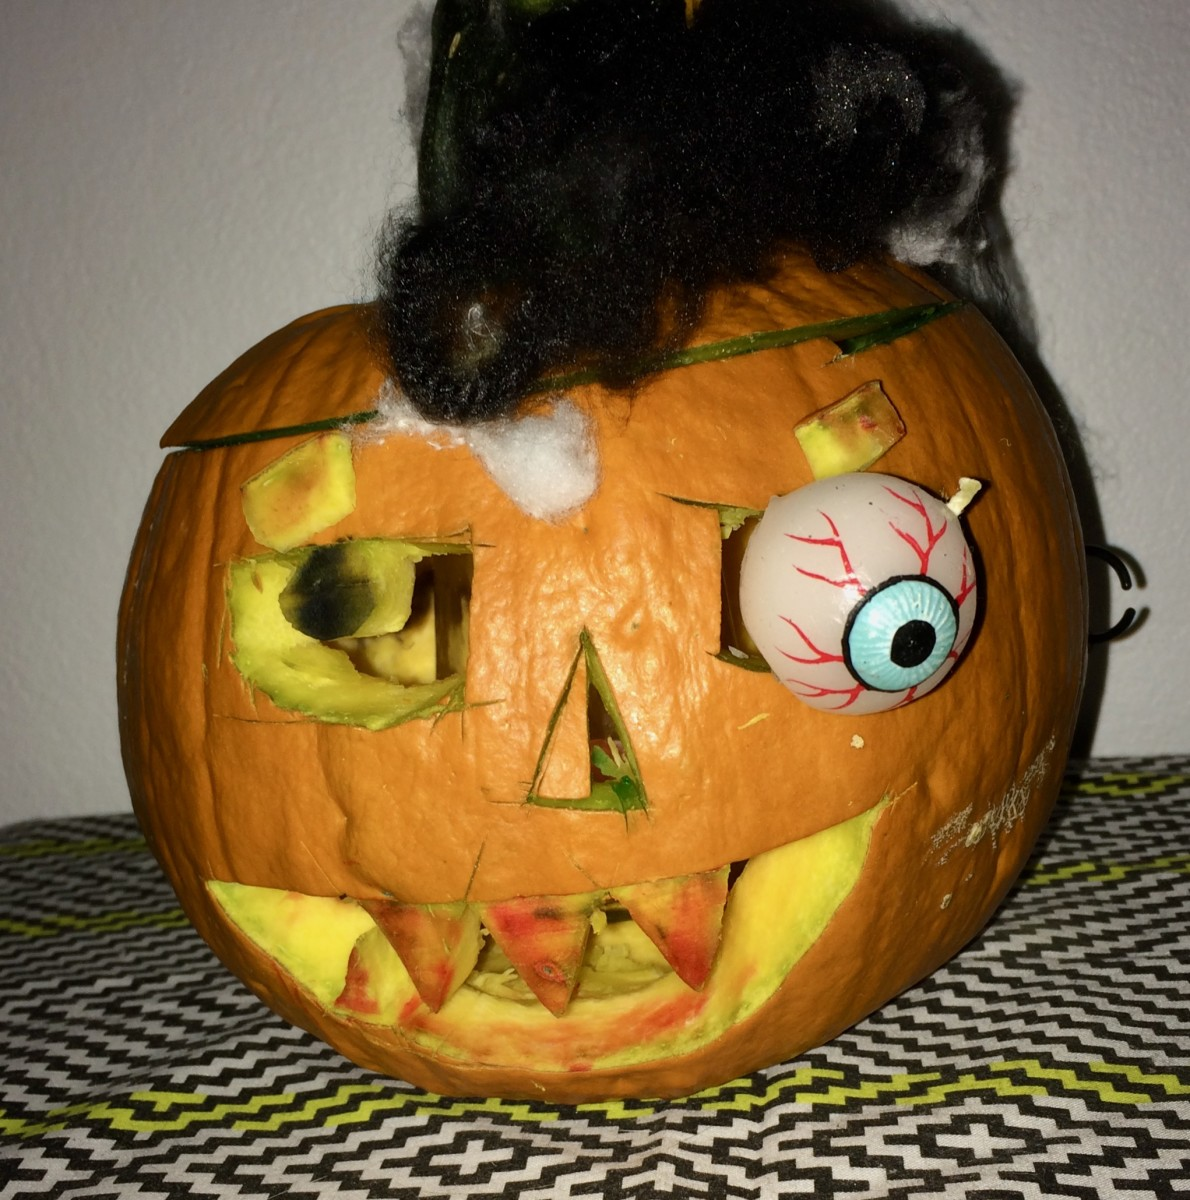 How to Grow Pumpkins From Seed for Halloween